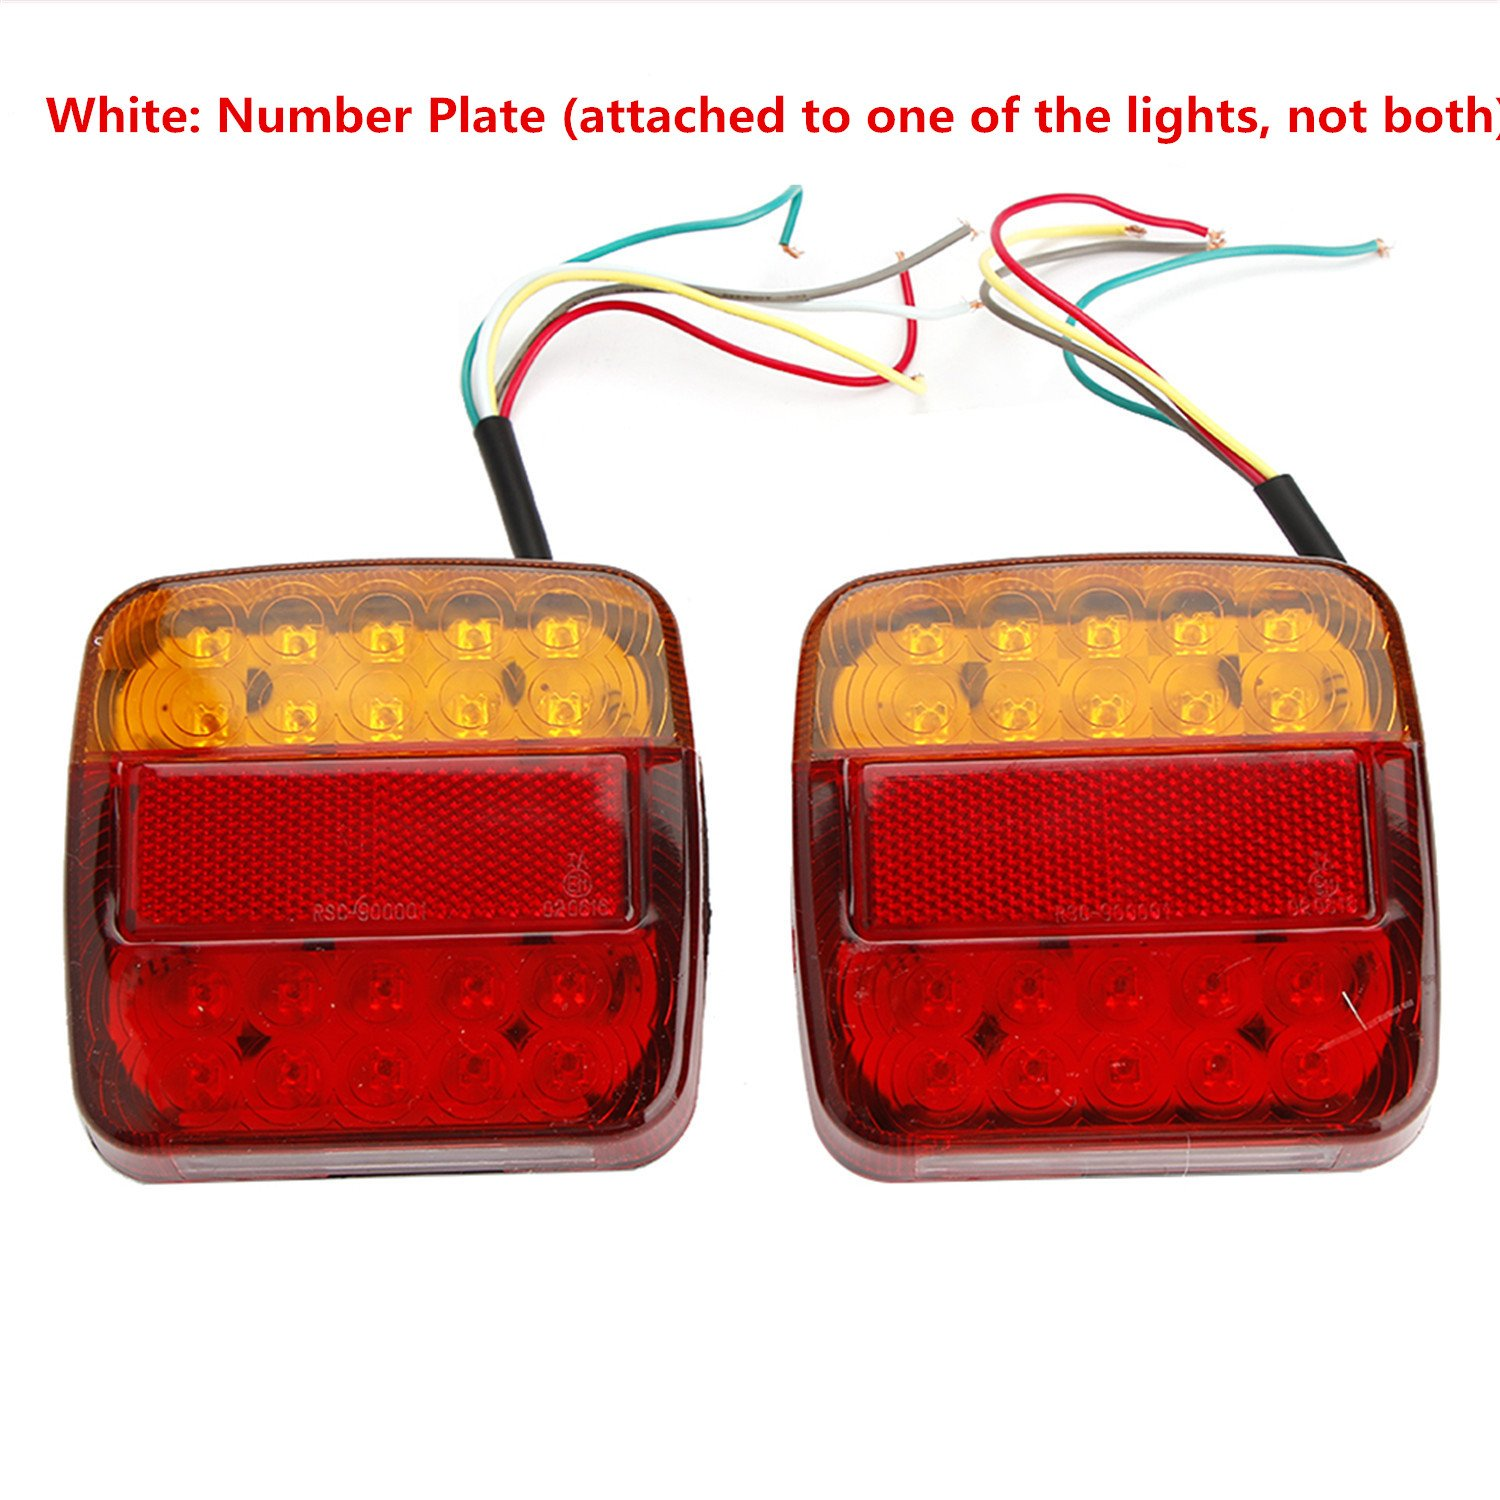 To Trace The Wire Here Is The Tail Light Diagram With The Brake Lights